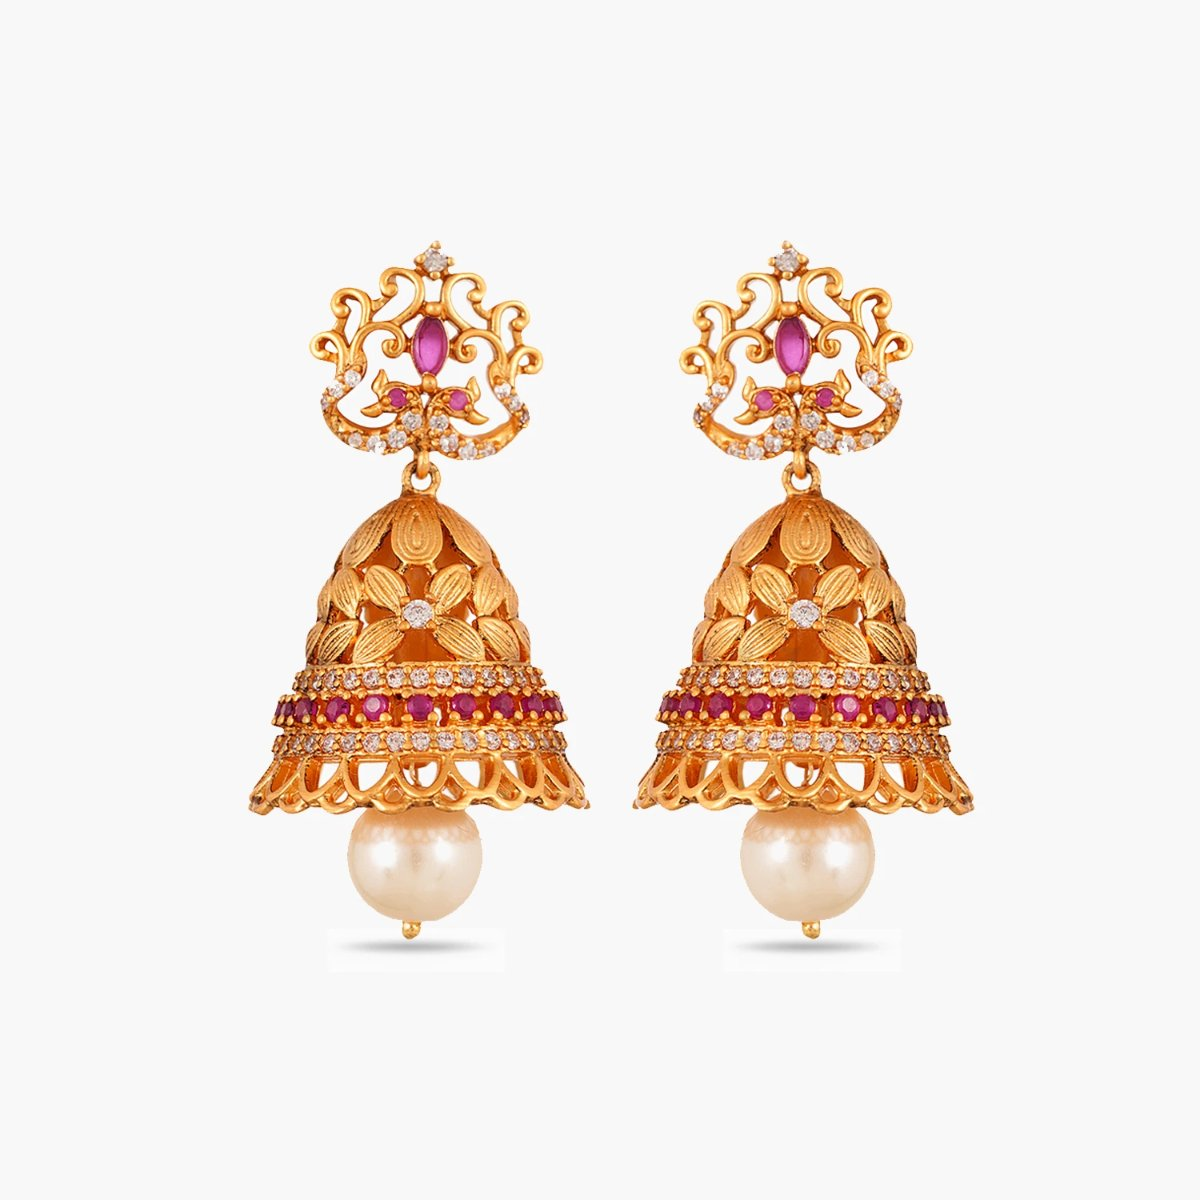 Adi Antique Jhumka Earrings